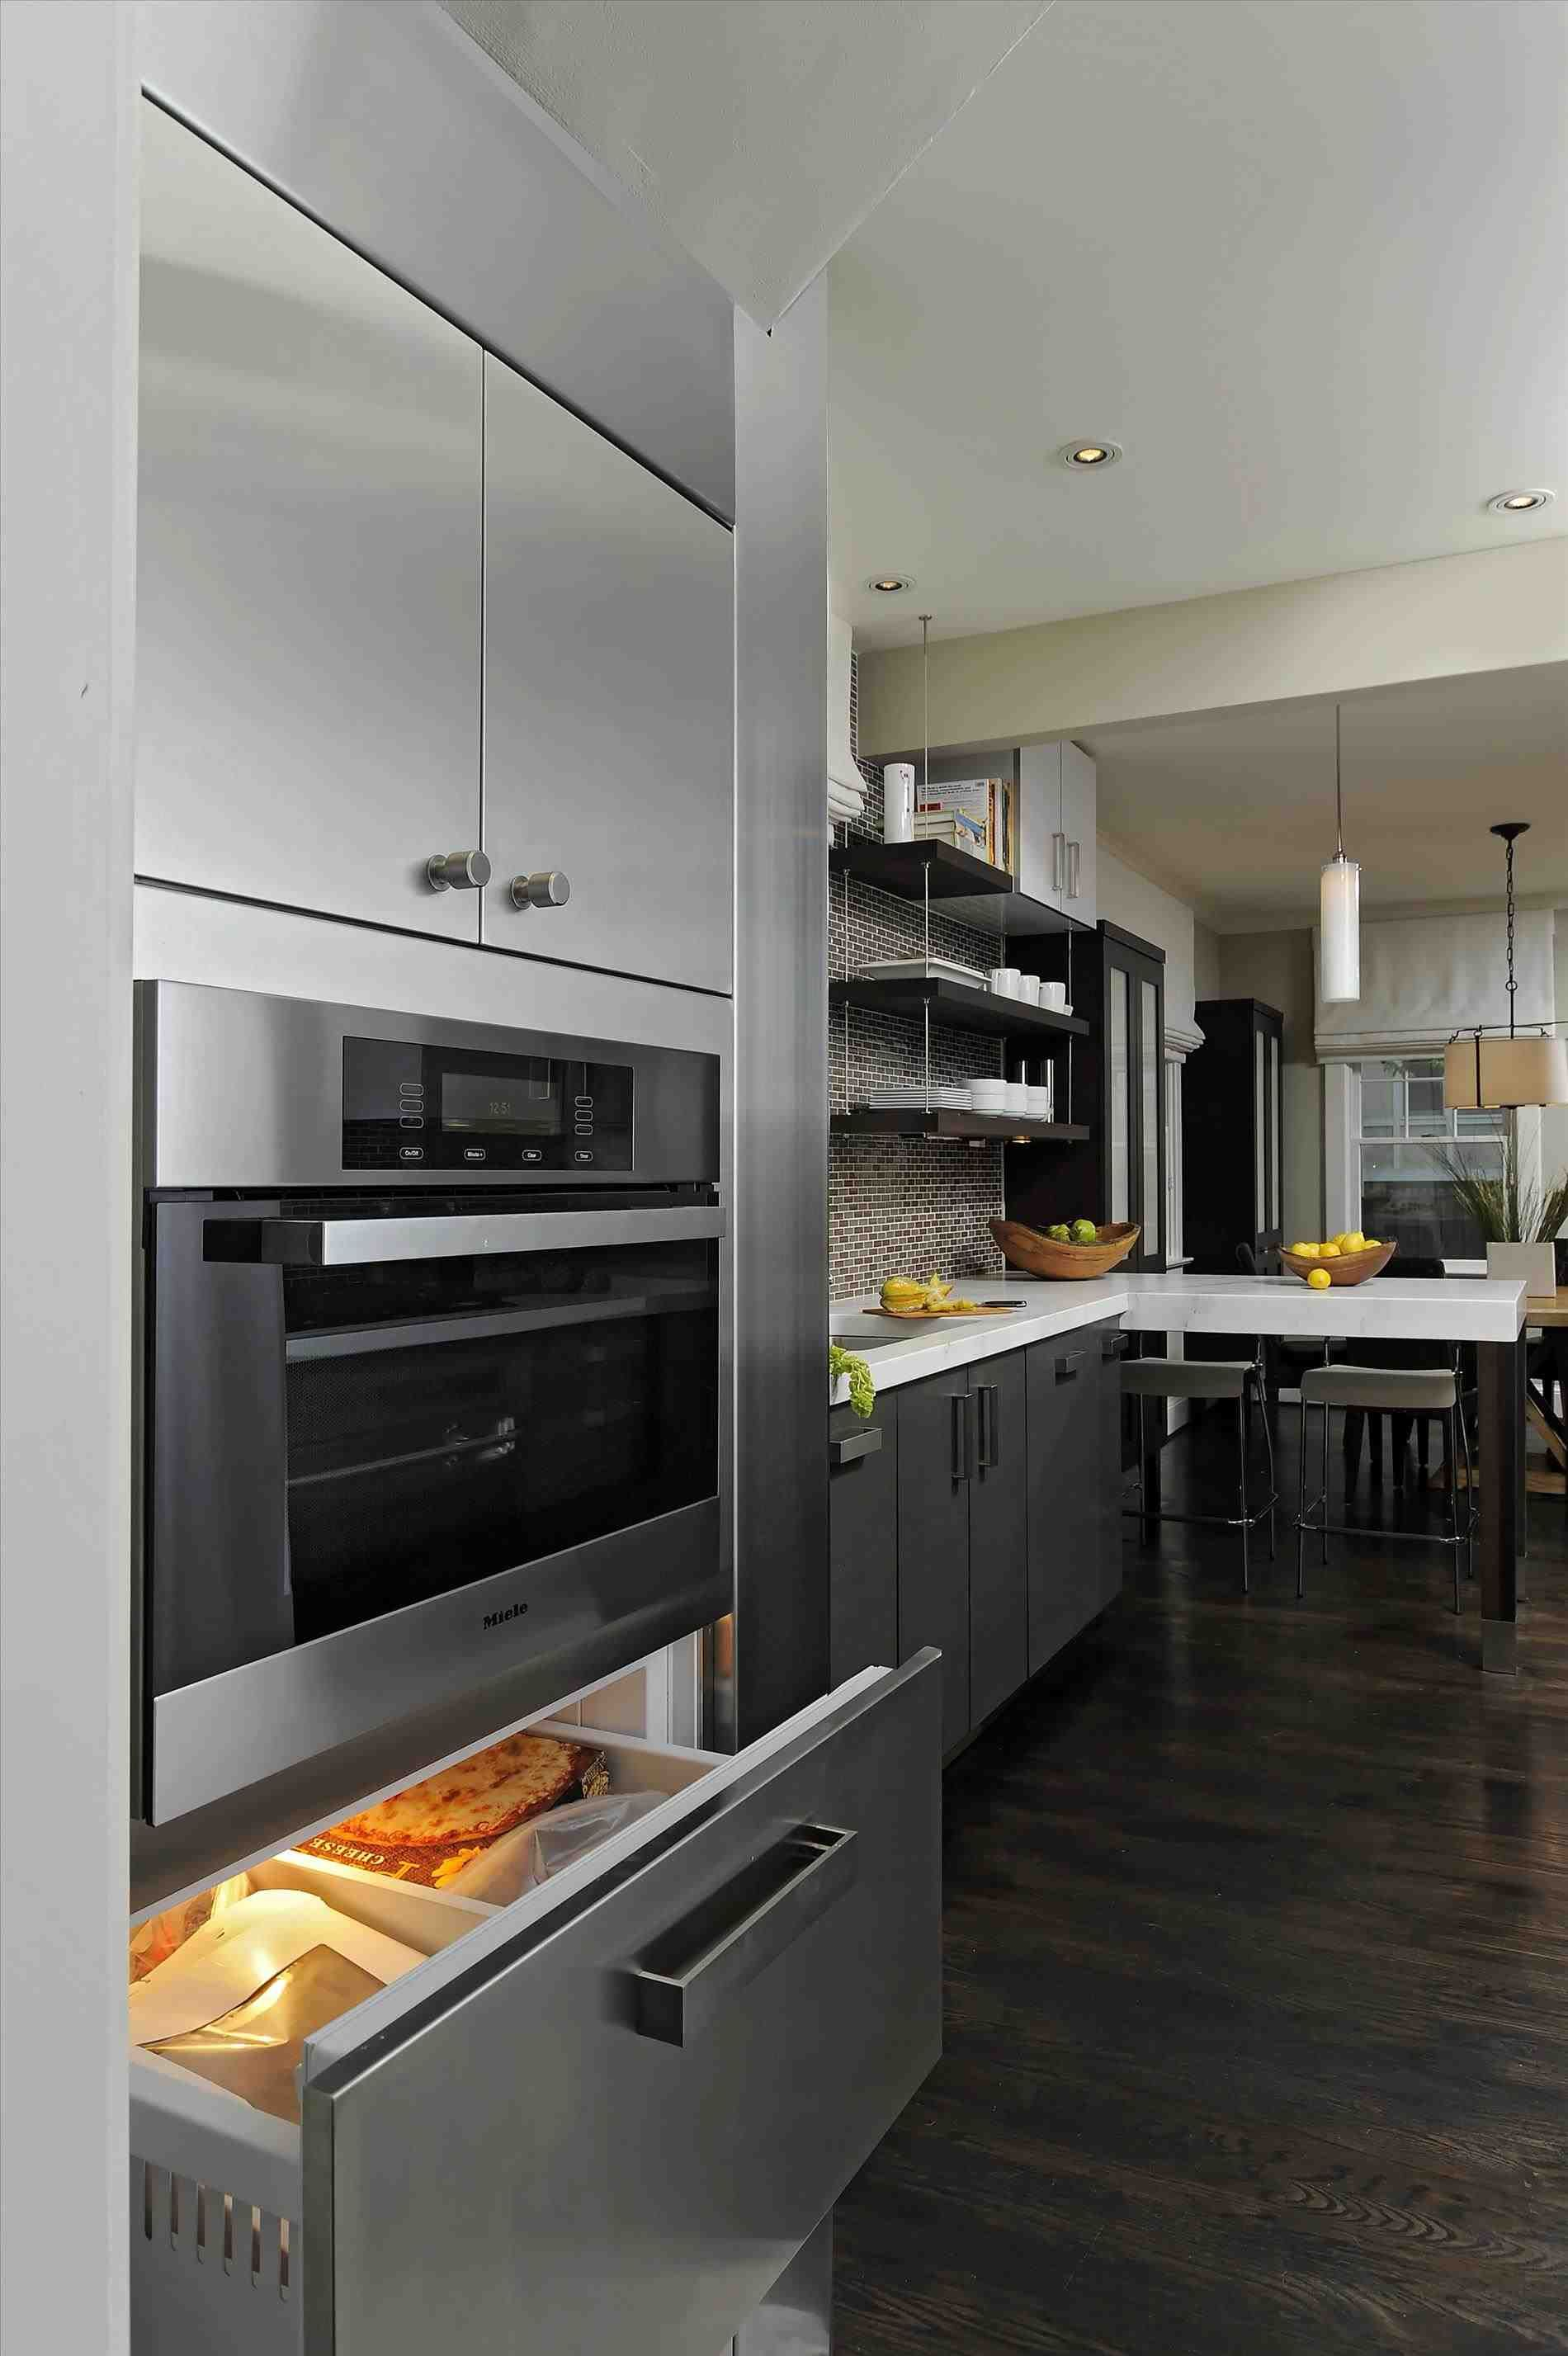 The 5 Hottest Trends In Kitchen Appliances